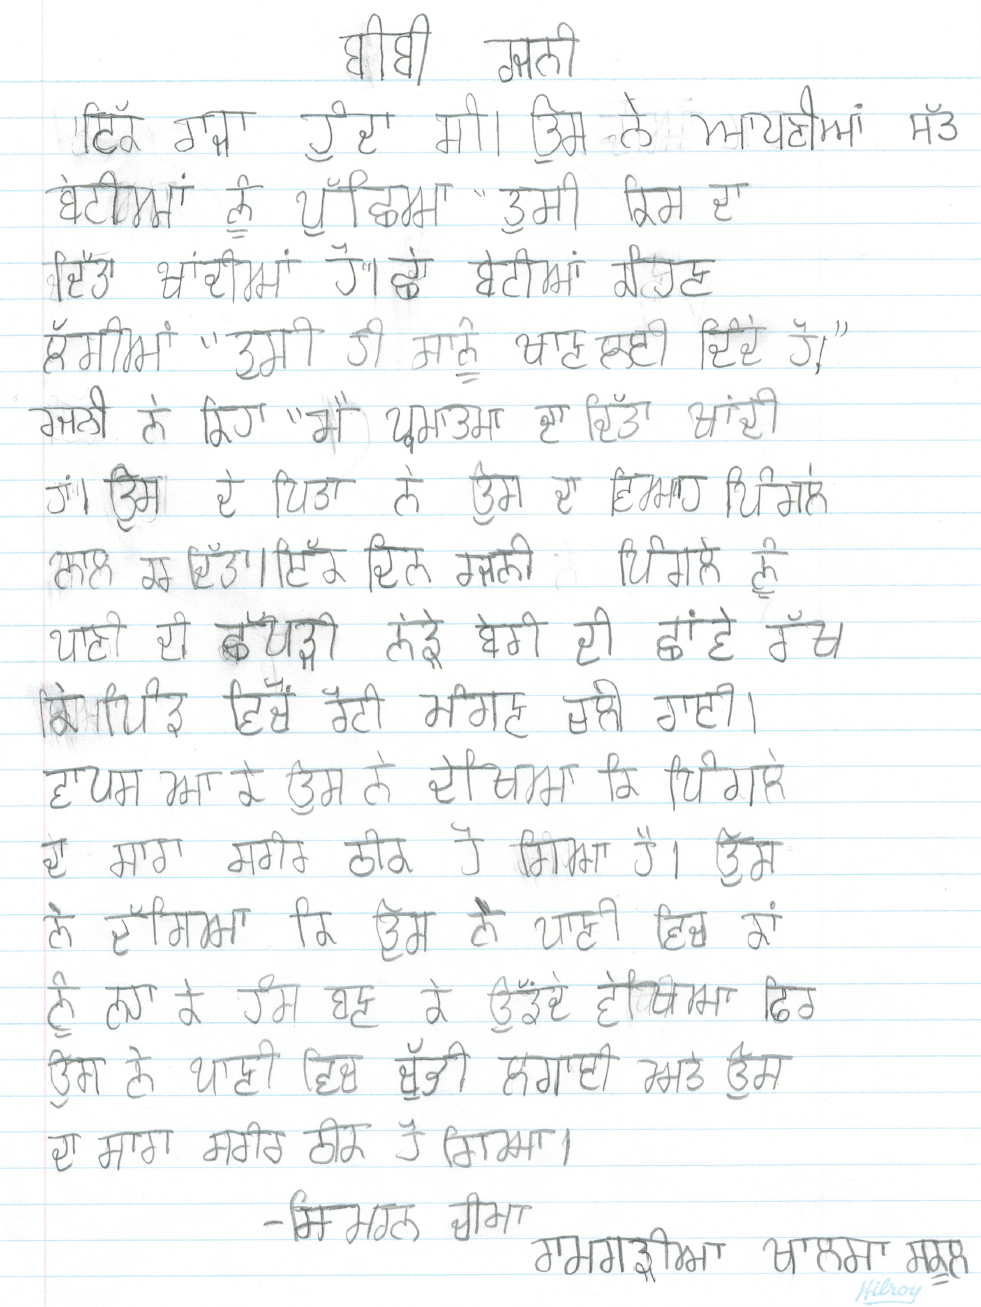 baisakhi essay written in punjabi language Short essay on 'baisakhi' (180 words) thursday, april 11, 2013 'baisakhi' is also called 'vaisakhi' baisakhi is usually celebrated on 13 april, and very occasionally on 14 april every year best essay it helped me so much in my homework.